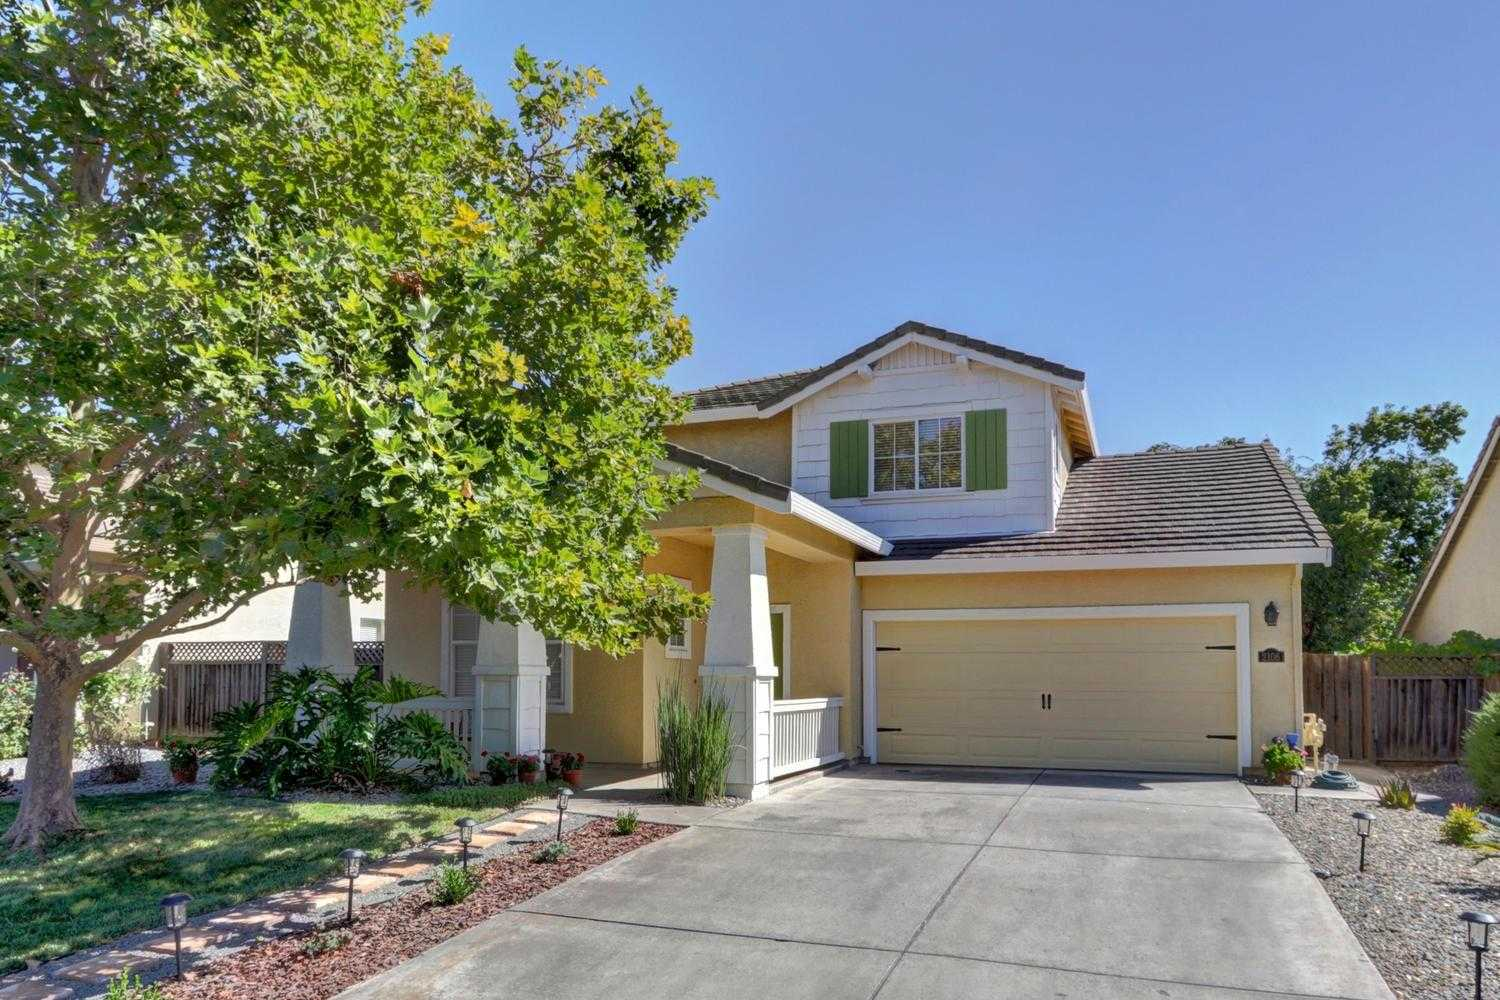 $810,000 - 4Br/3Ba -  for Sale in Wildhorse, Davis